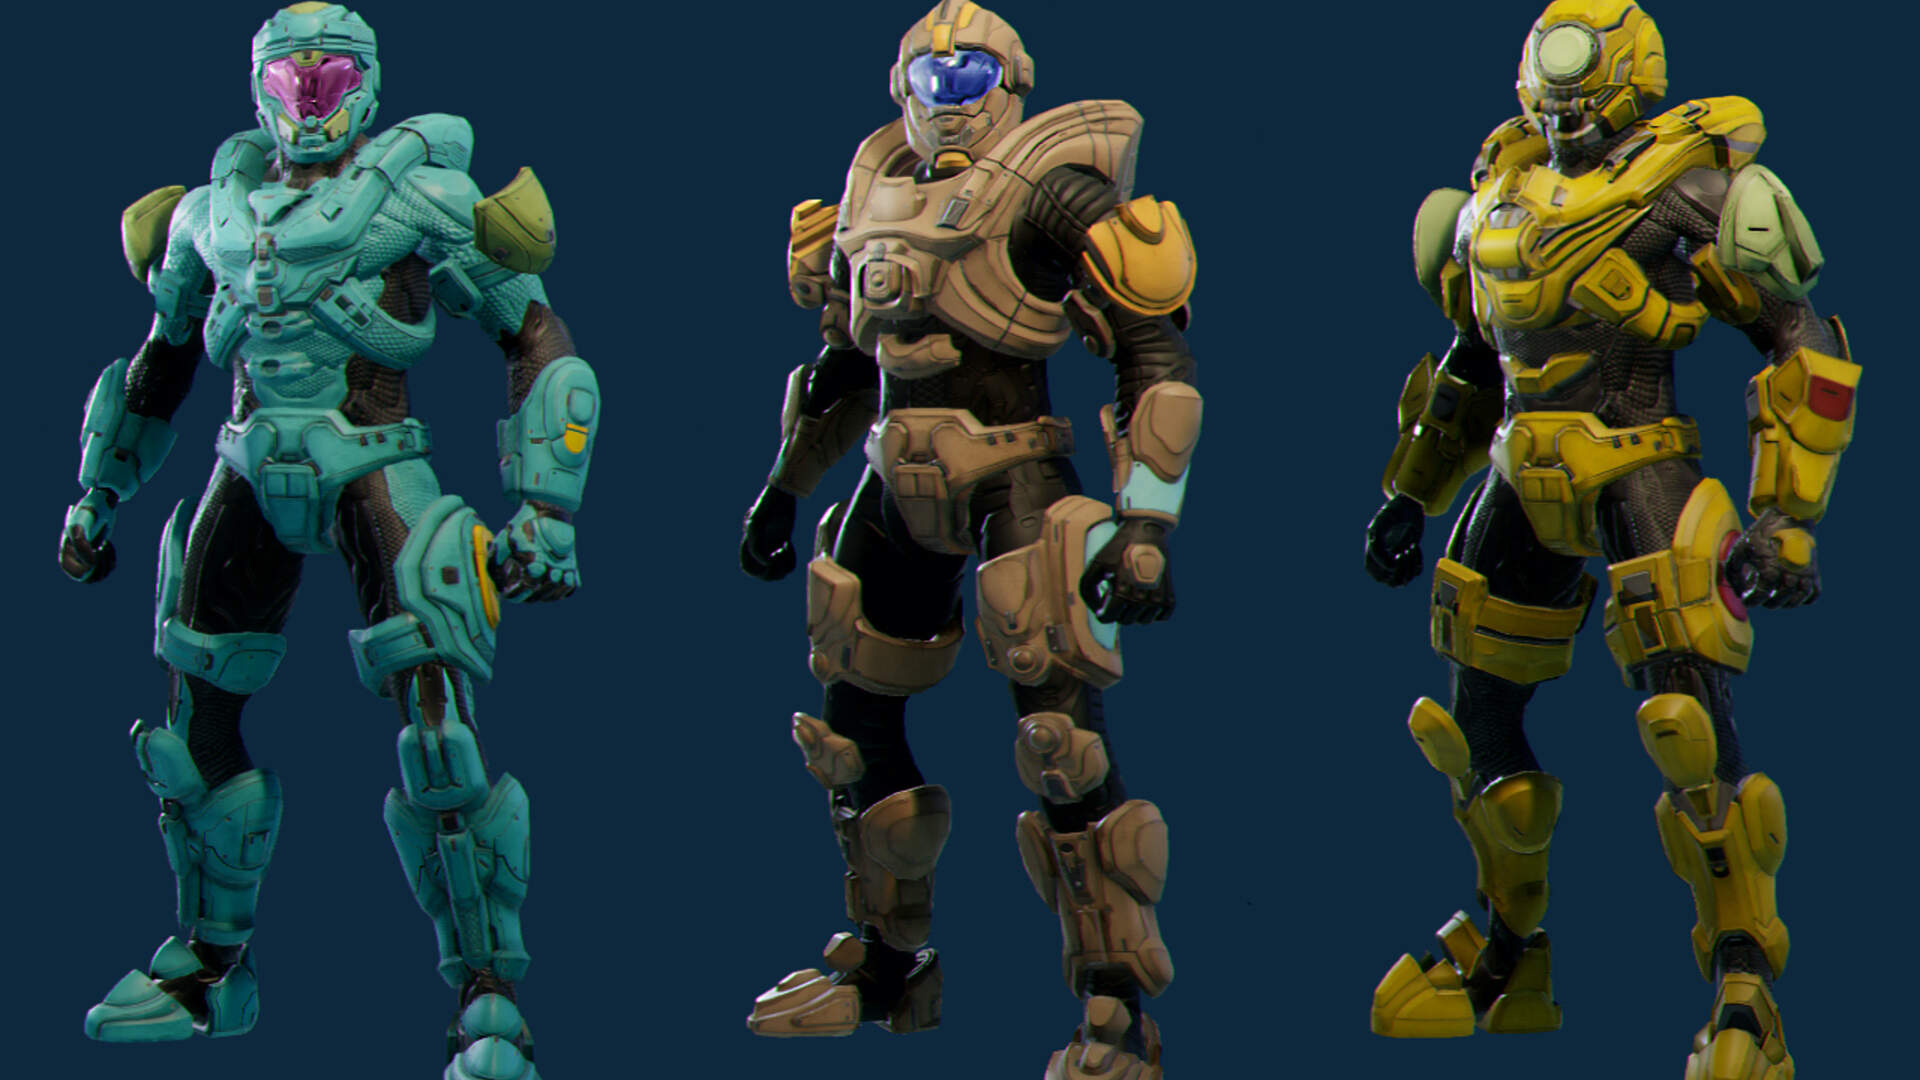 Halo 3 Gets New Armor in the Master Chief Collection, But Many Aren't Happy About It